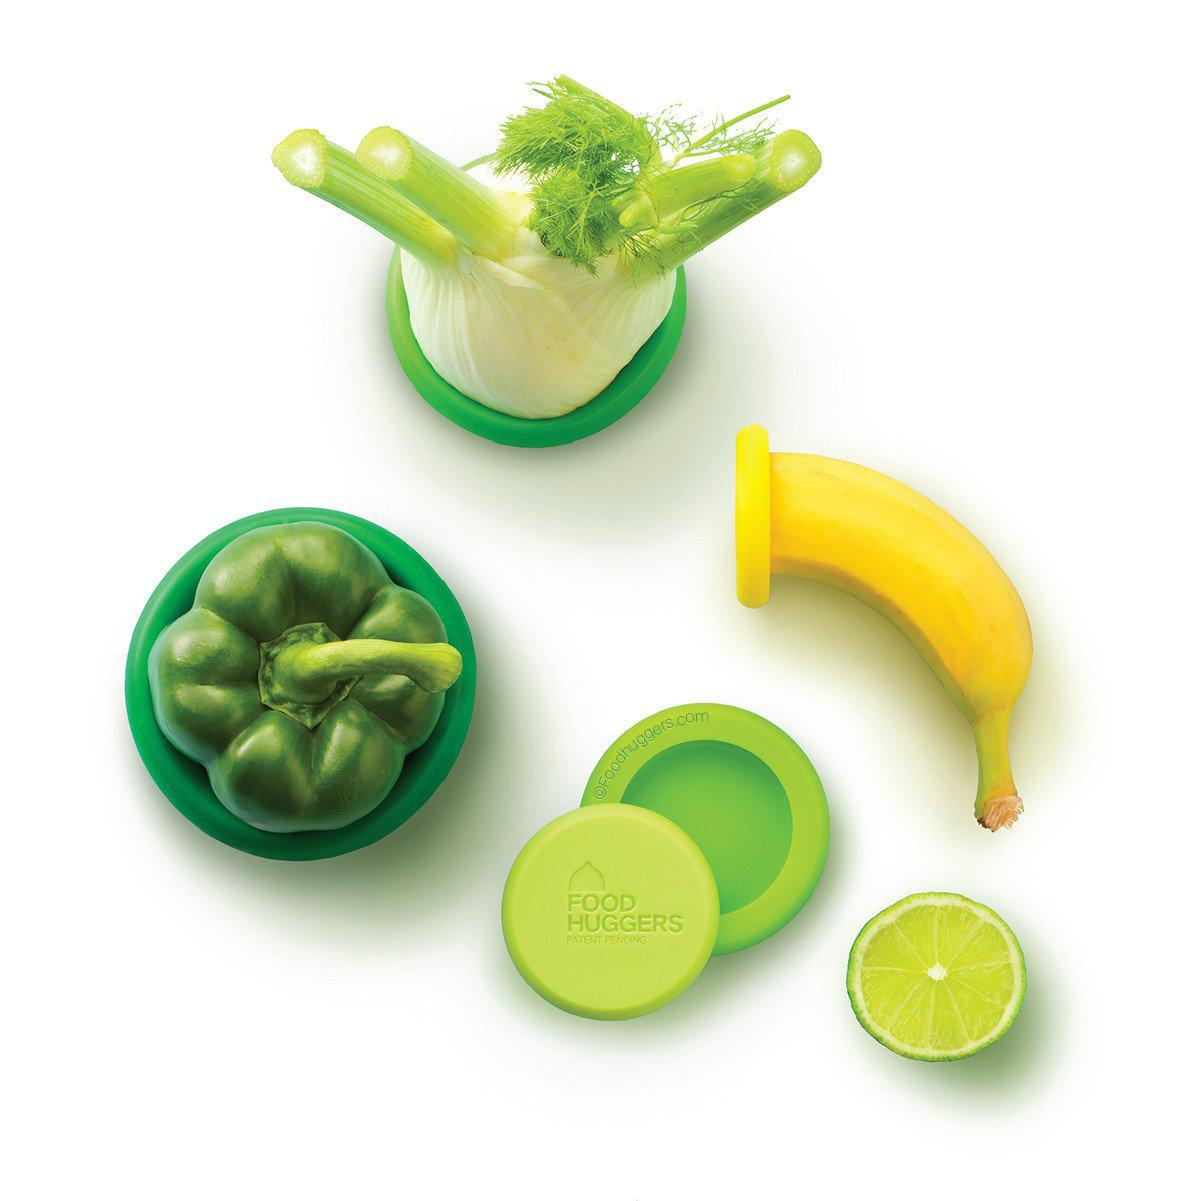 Set of 5 Food Huggers - Fresh Greens